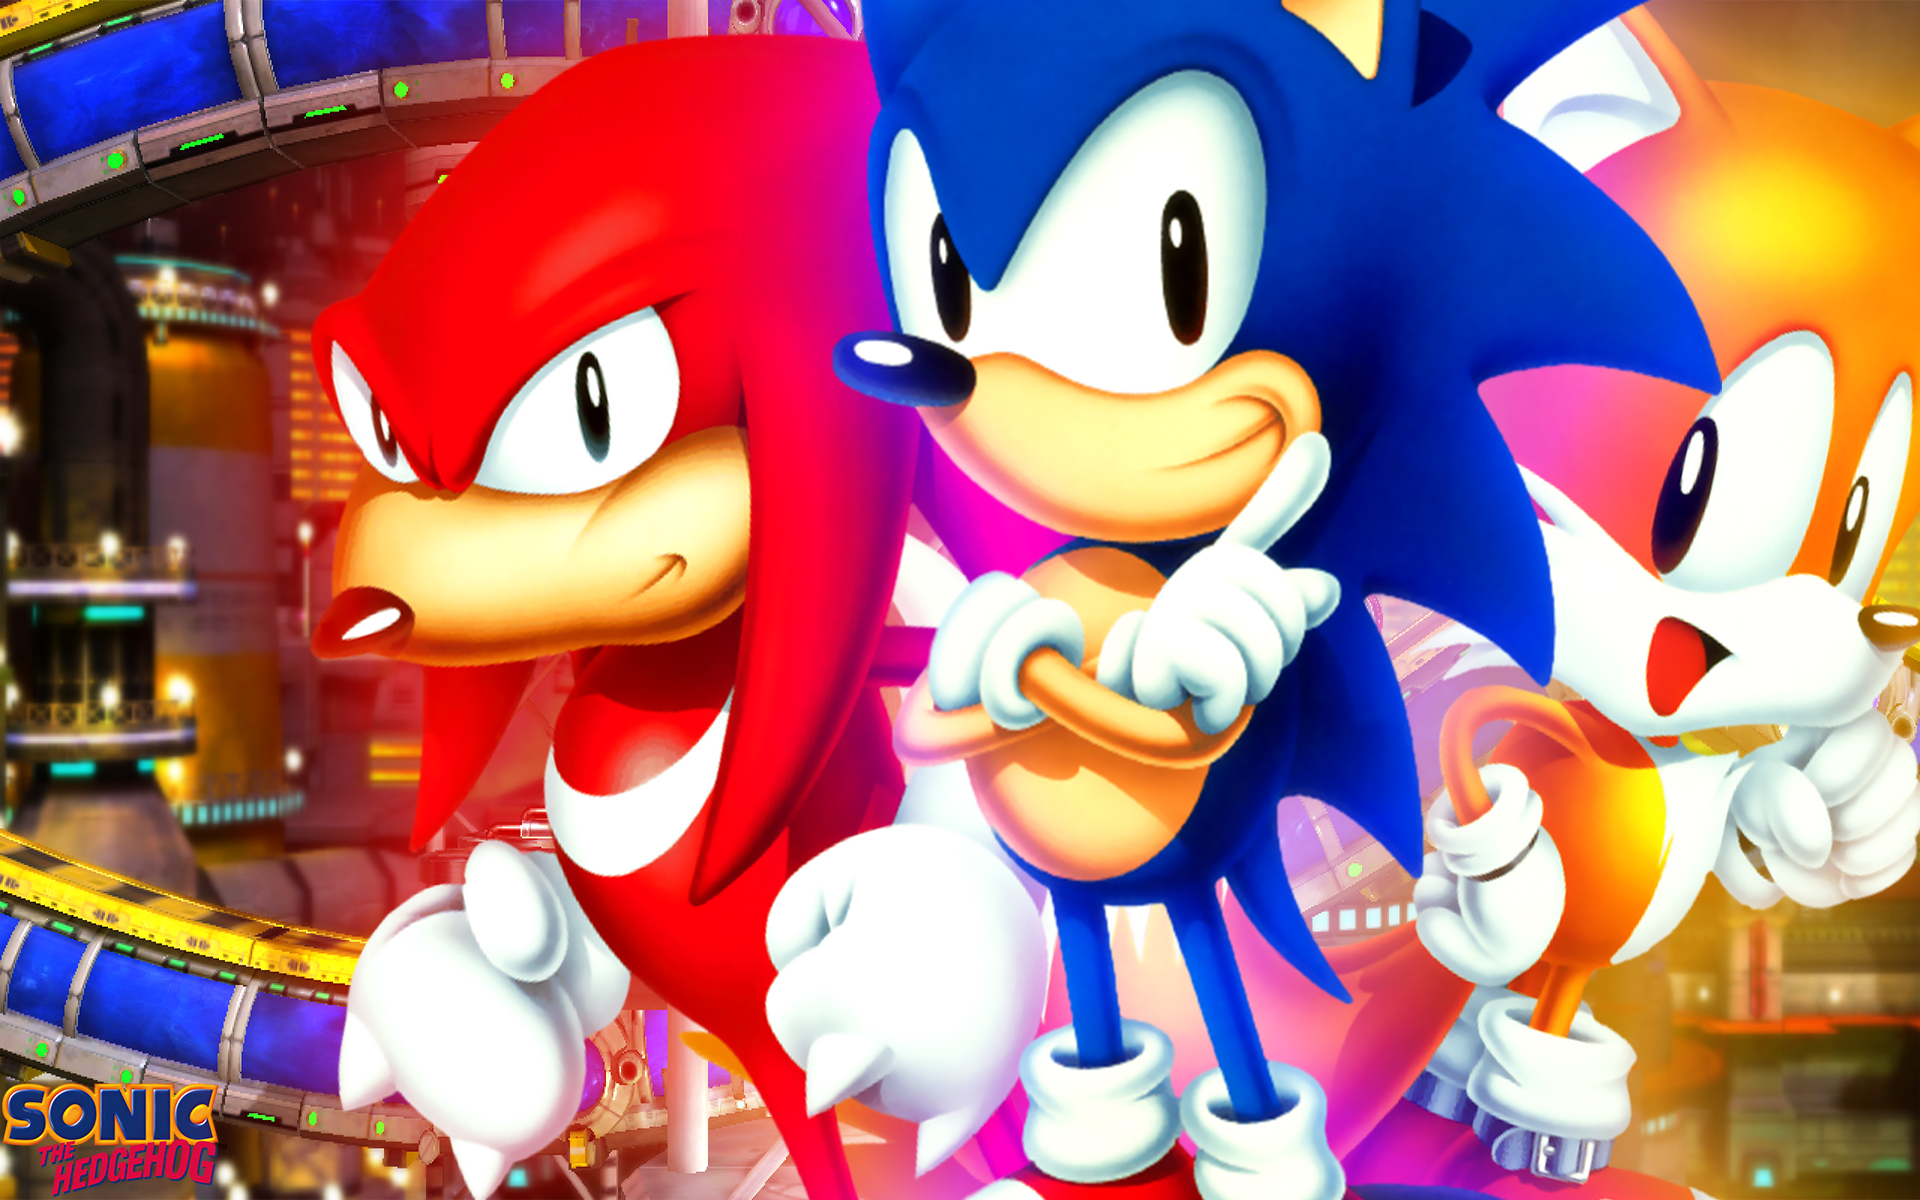 Classic Sonic Wallpaper Hd Classic Sonic The Hedgehog And Tails 1920x1200 Wallpaper Teahub Io